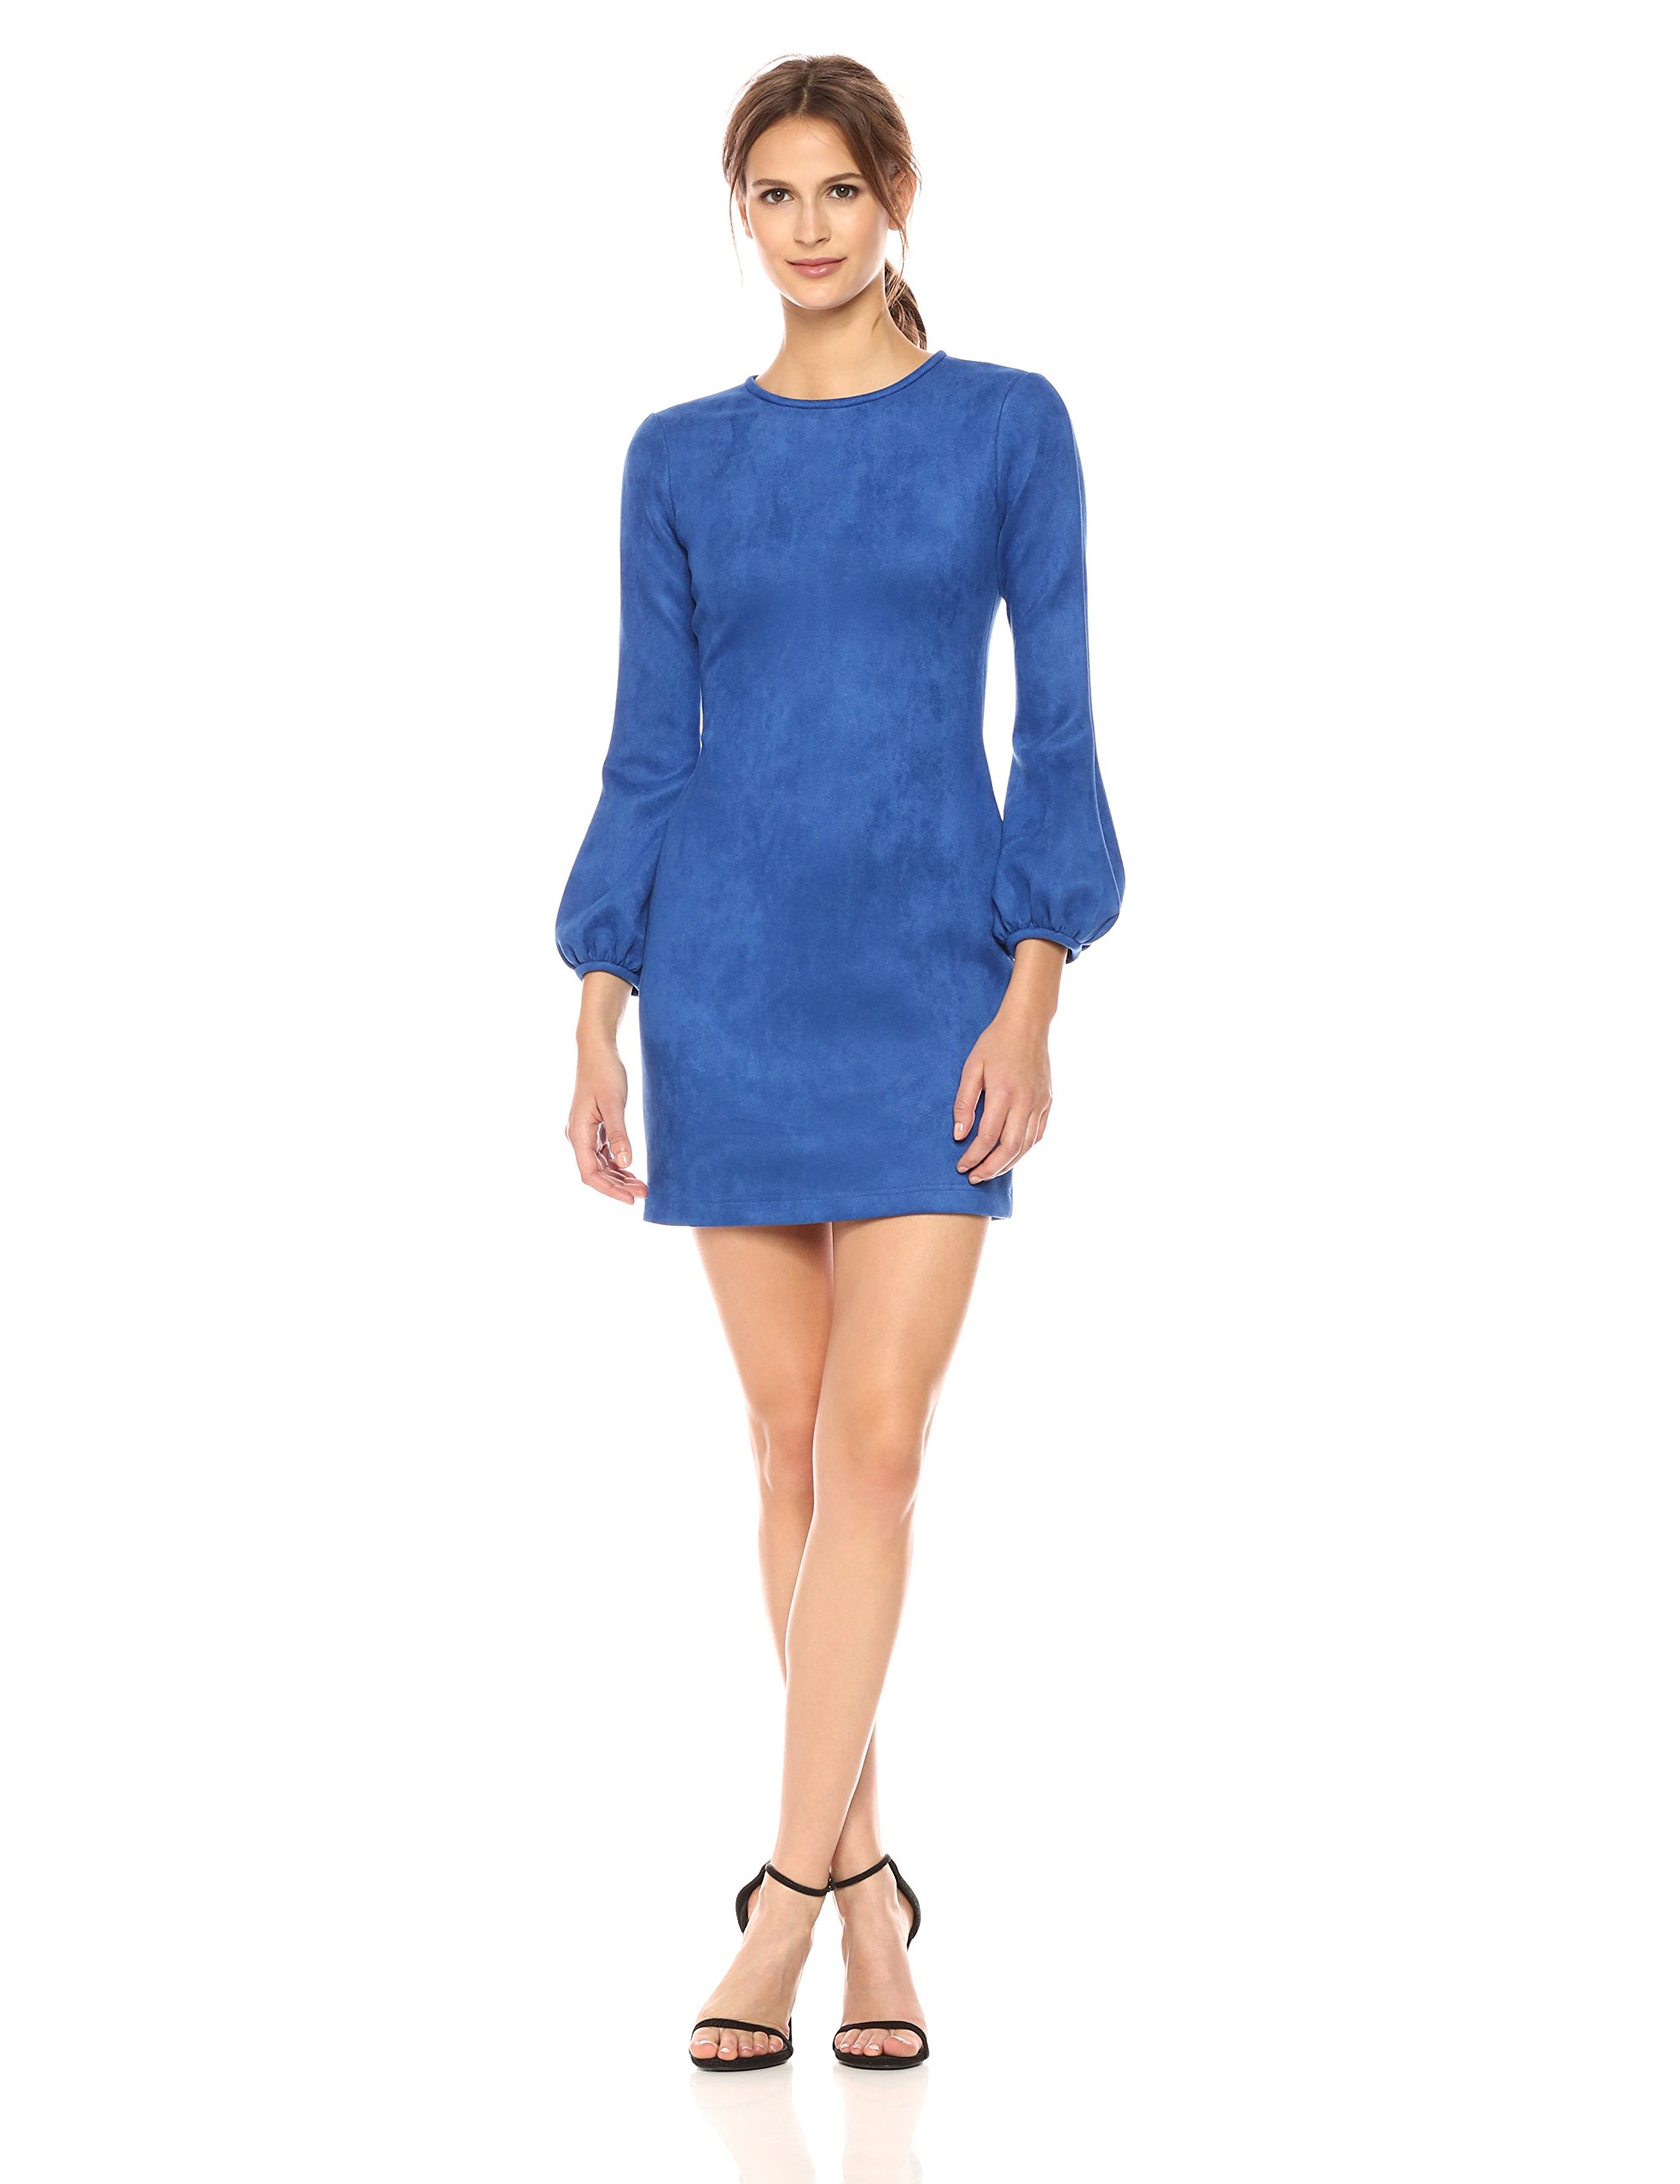 Cynthia Rowley Women's Suede Bell Sleeve Dress, Bright Blue, 10